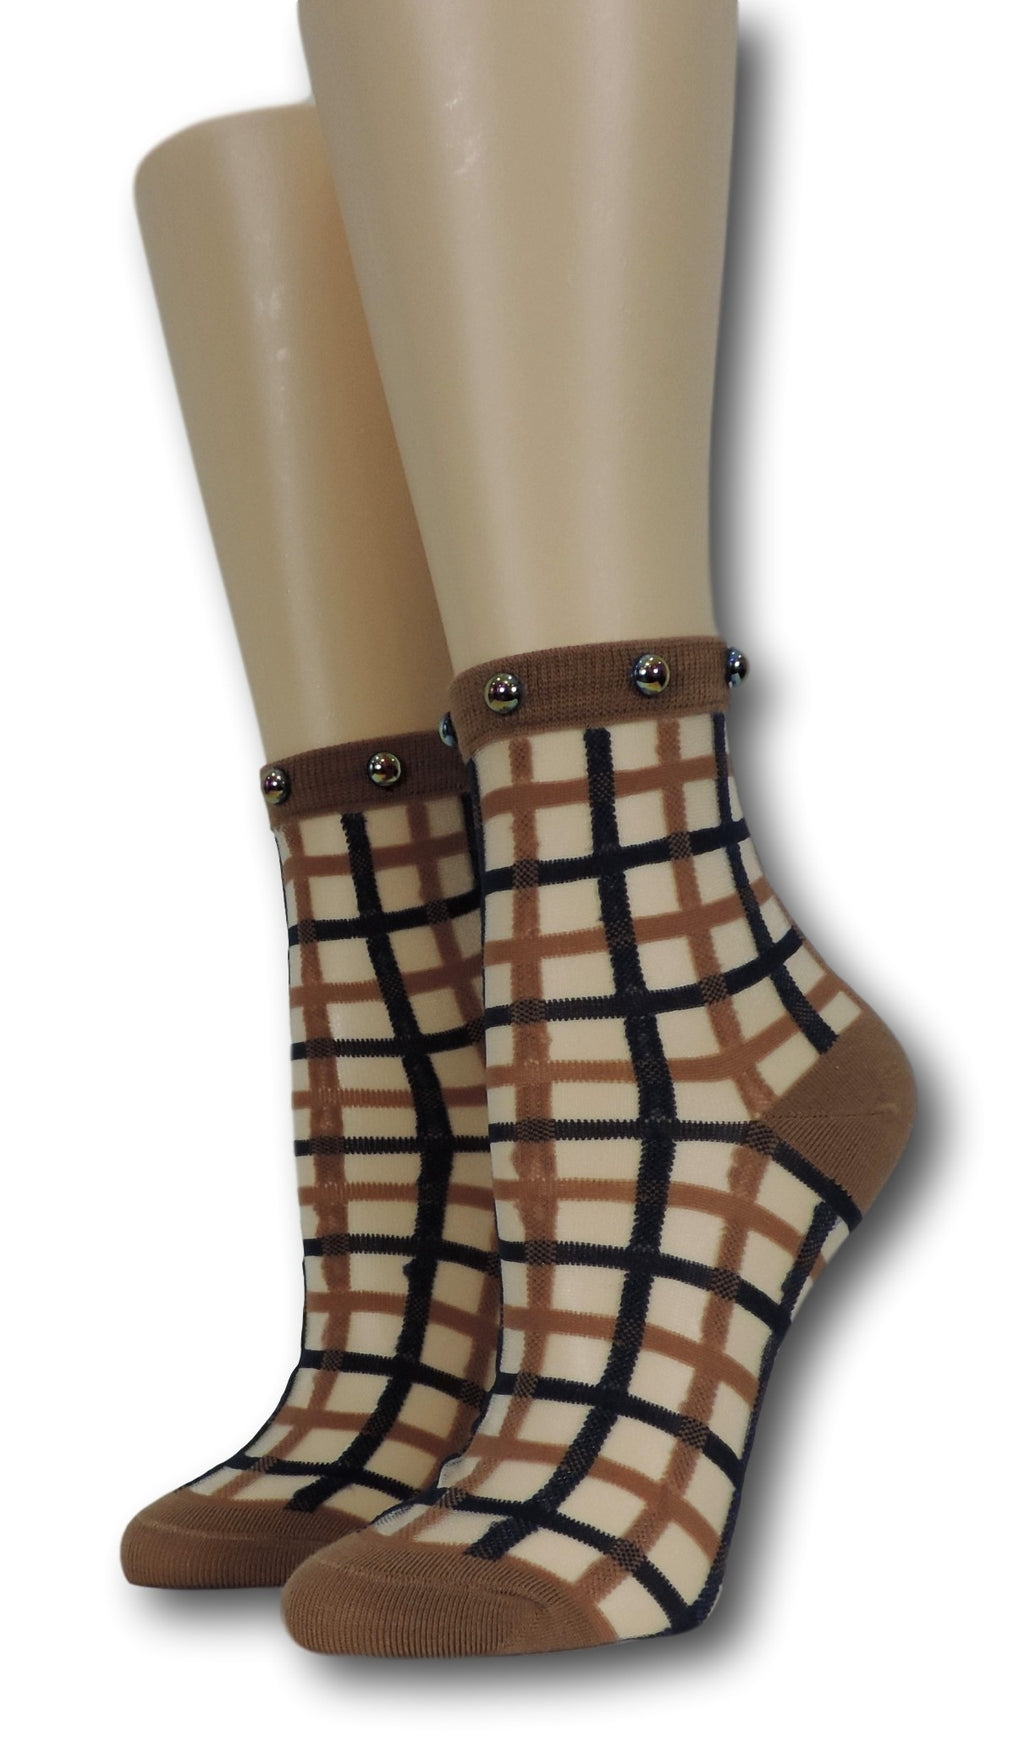 Brown Vintage Sheer Socks with beads